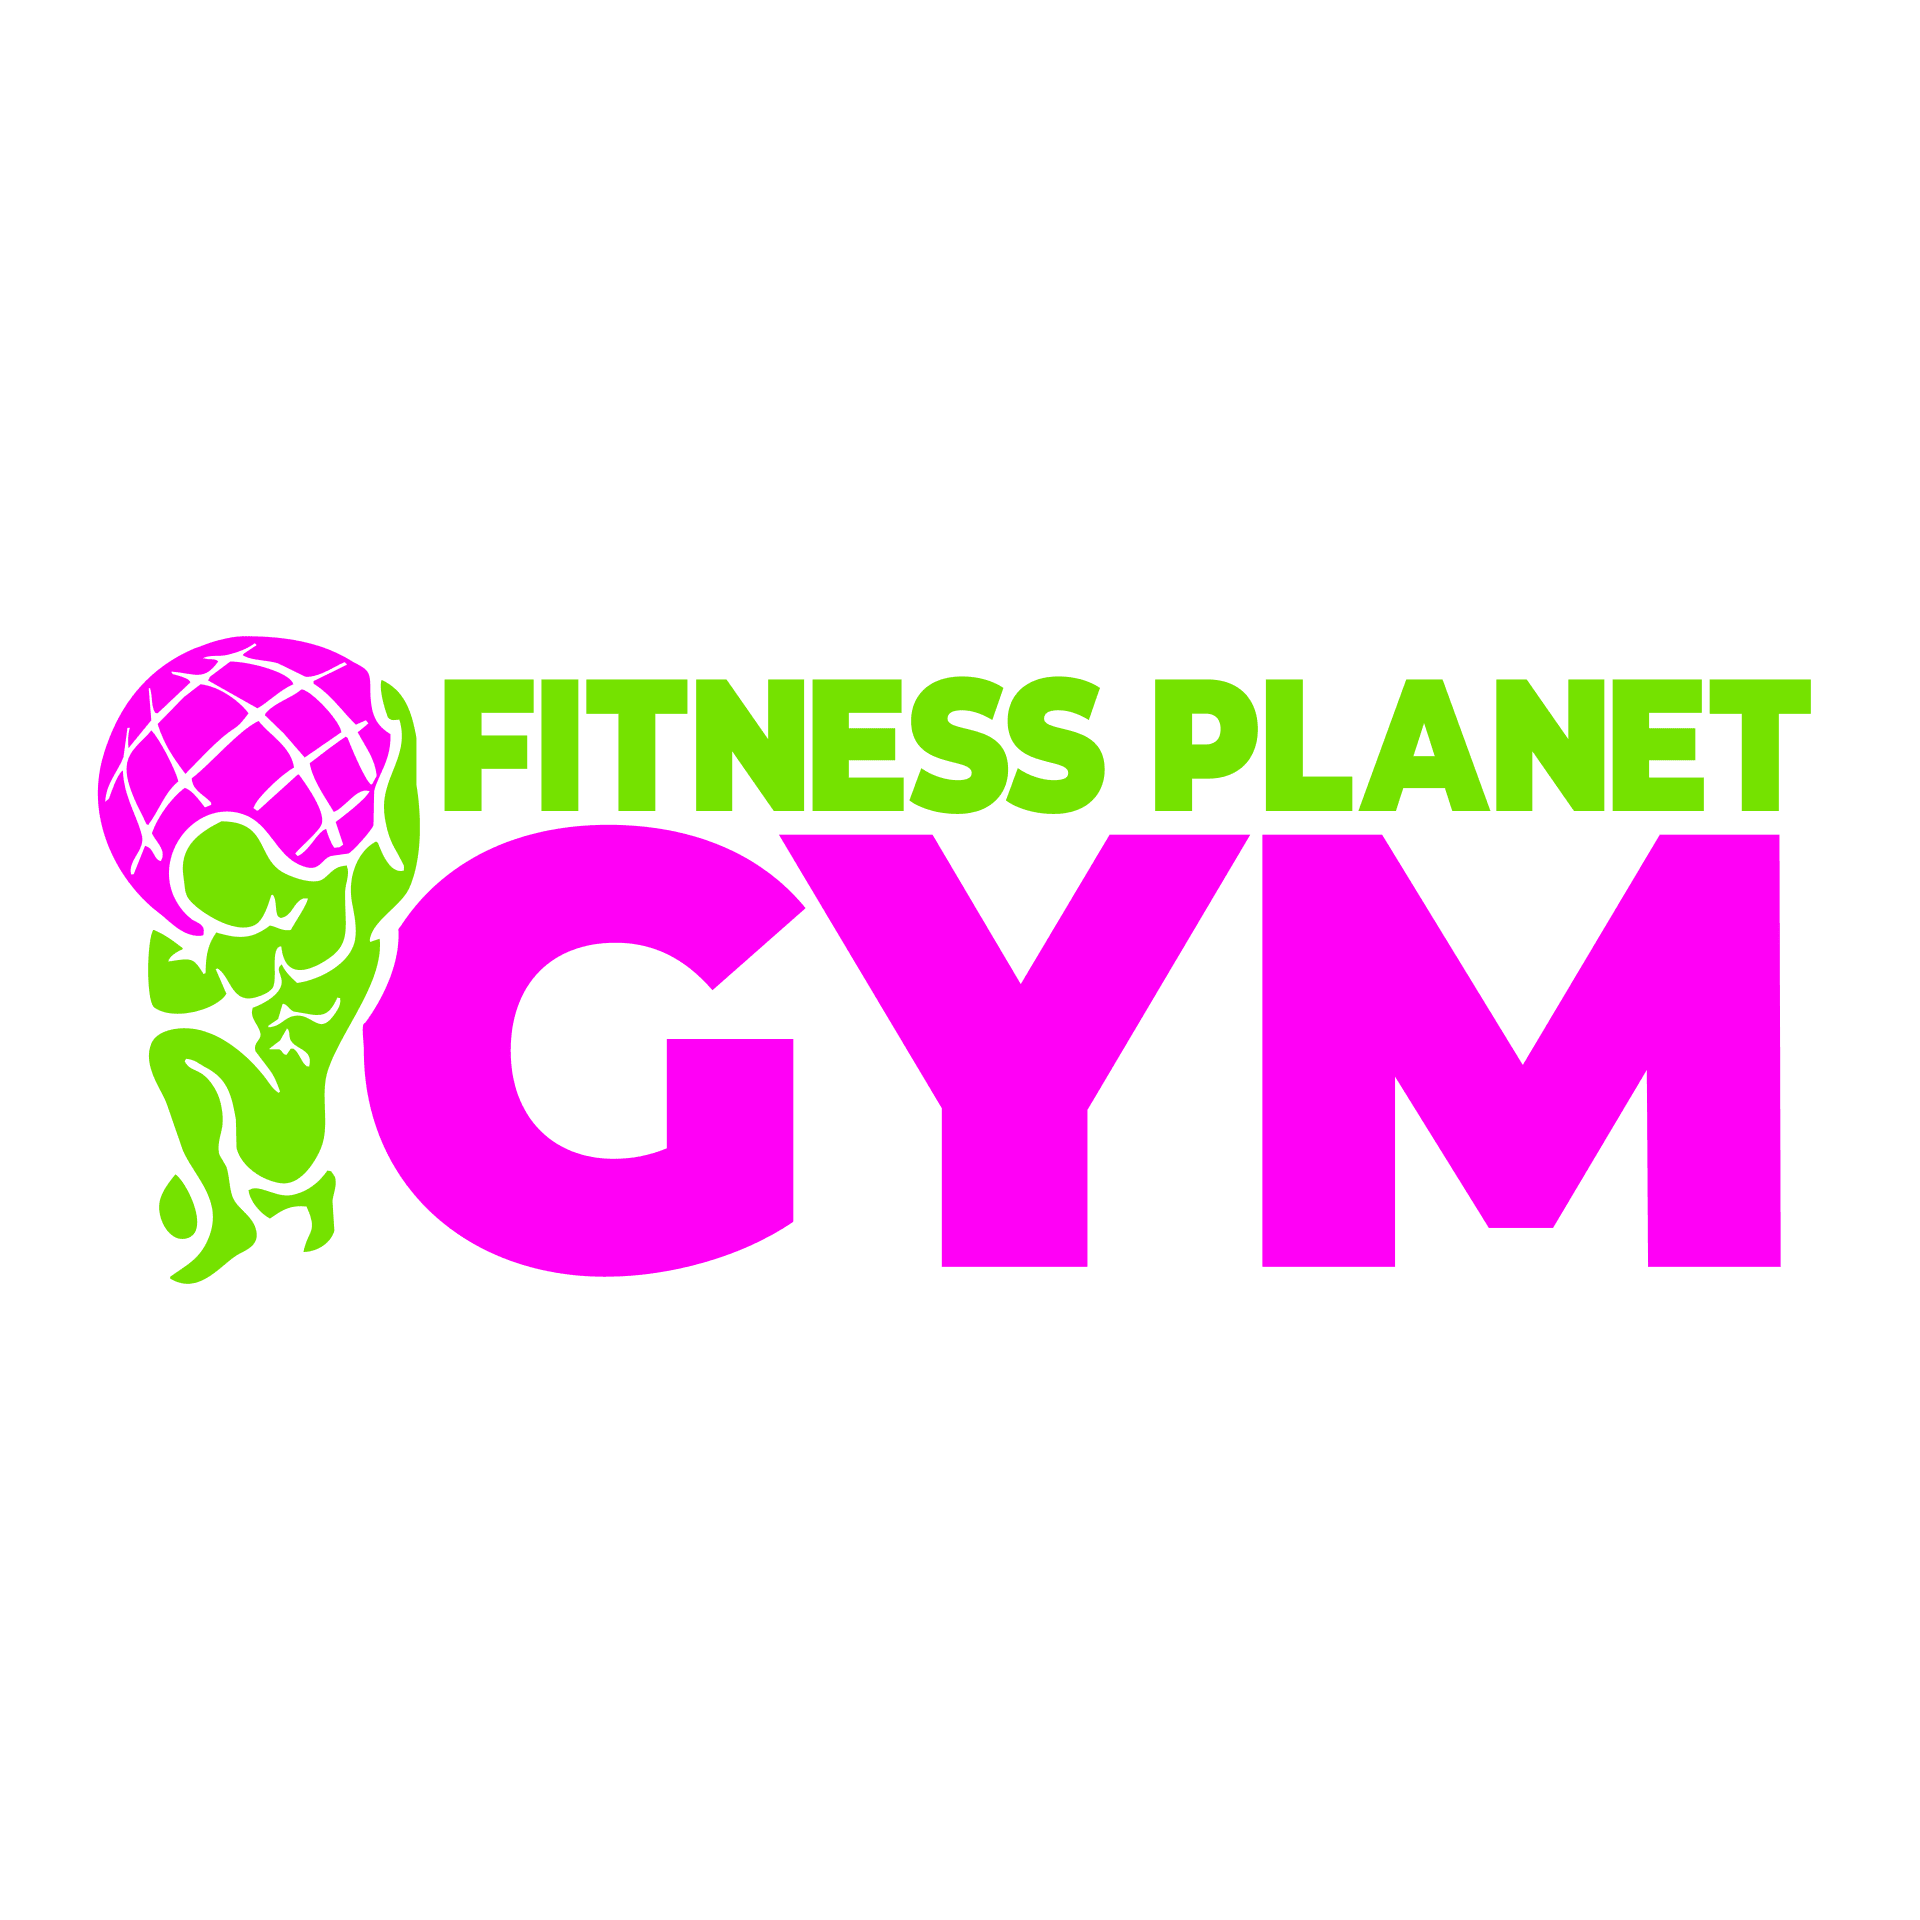 Fitness Planet Gym